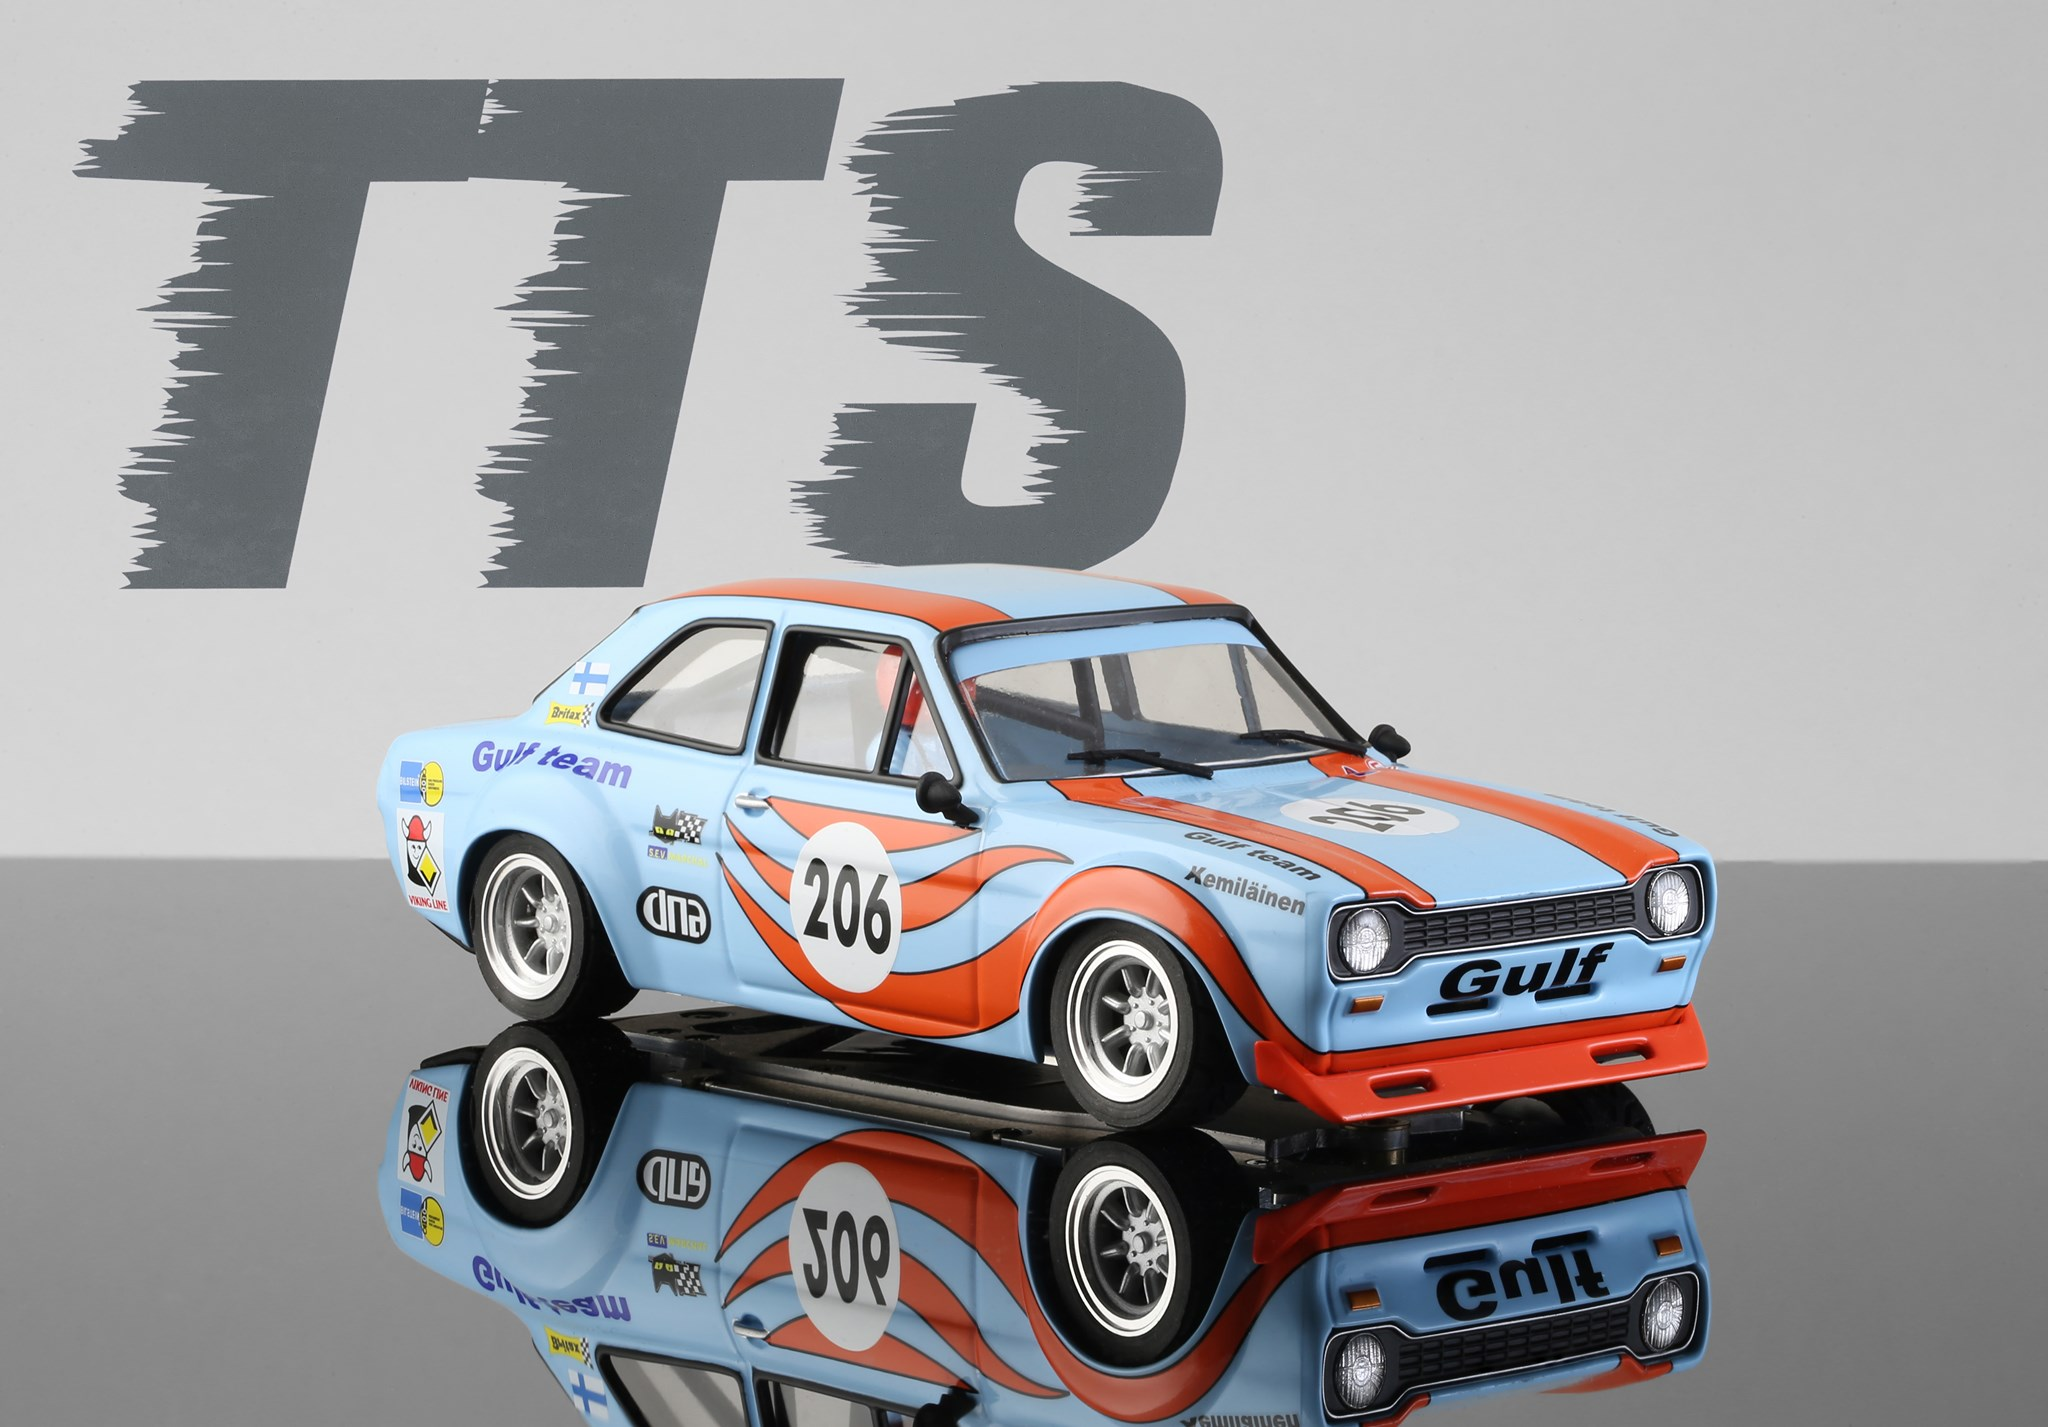 TTS 1/24 - Ford Escort MK1 - Gulf Team #206 -TTS017